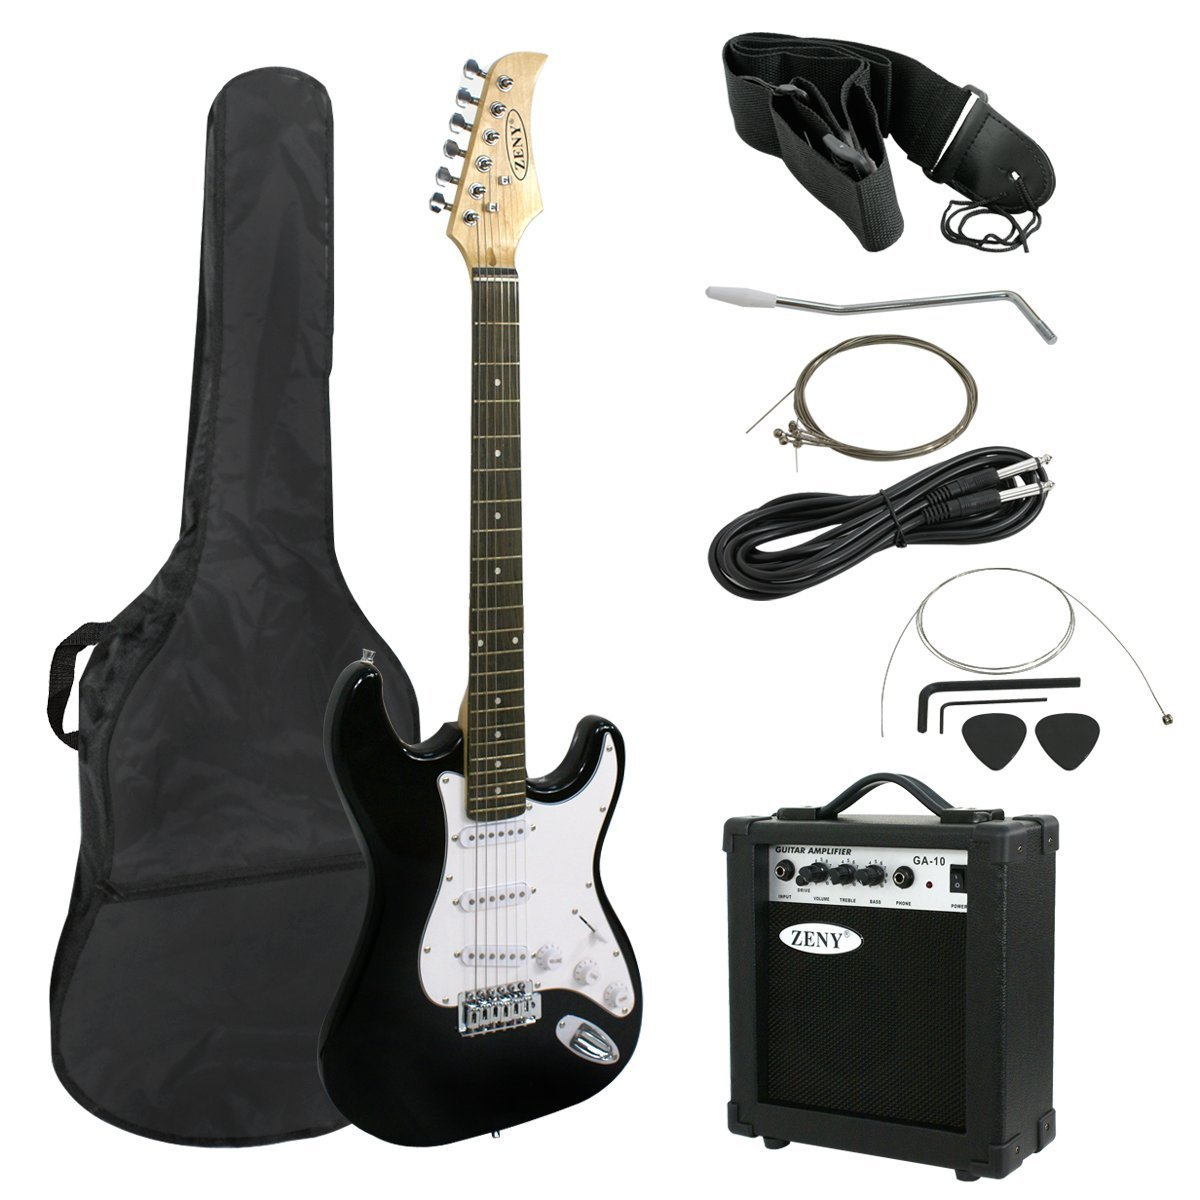 JupiterForce 39 Full Size Electric Guitar with Amp, Case and Accessories Pack Beginner Starter Package, Black (Blue)